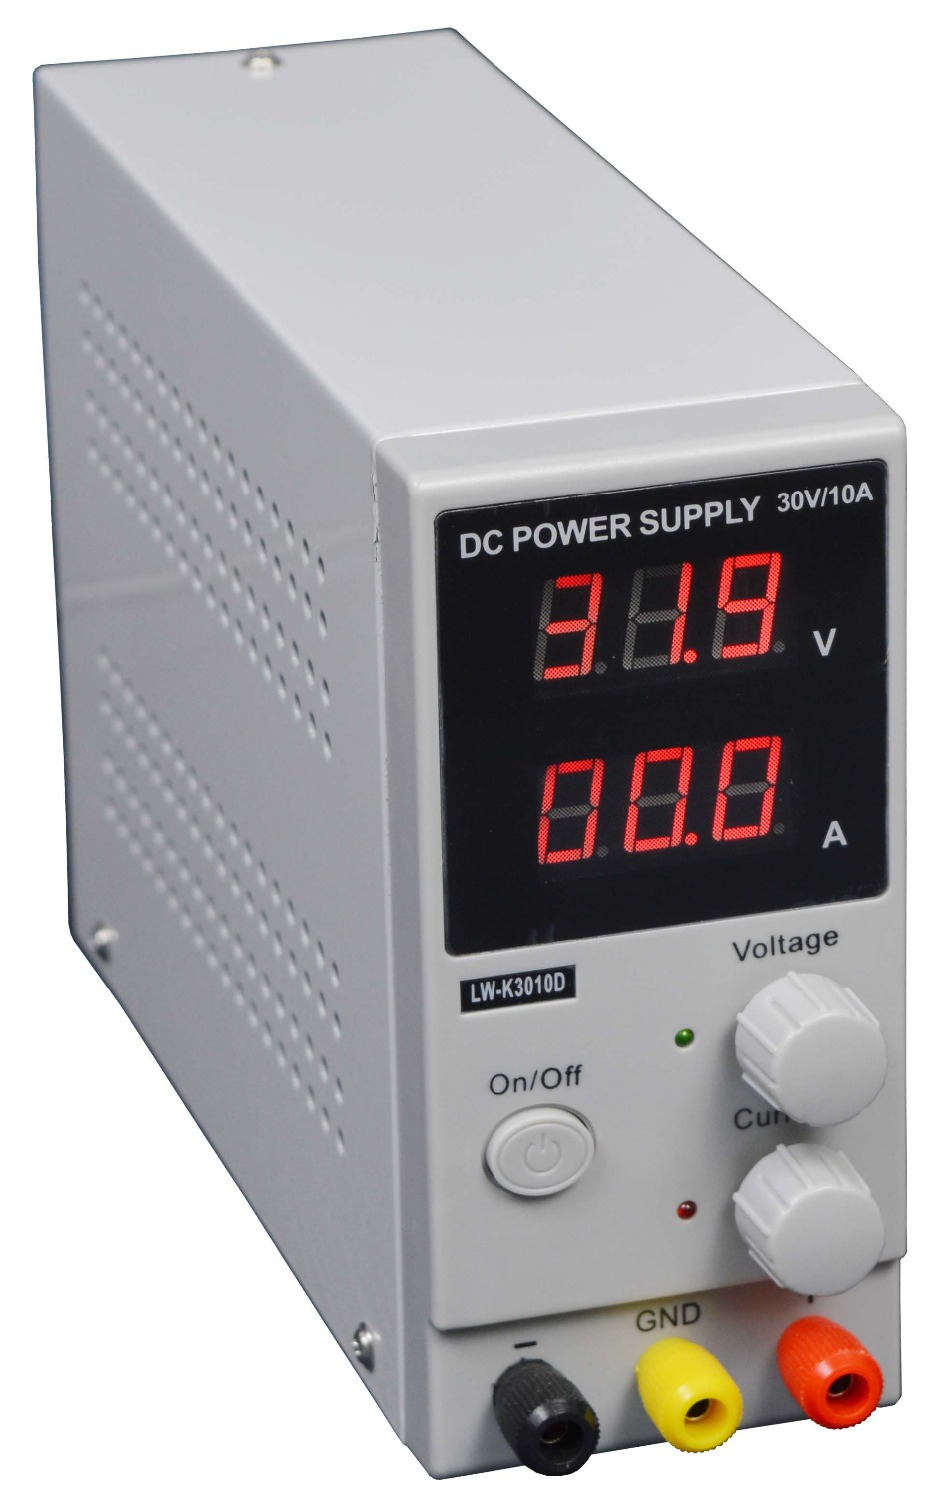 4PCS LW-3010D 110V 220V Mini Adjustable Digital DC power supply,0~30V 0~10A ,Switching Power supply, certification,US/EU/AU Plug kps10010d high power adjustable switching dc power supply 0 100v 0 10a 110v 220v precision digital dc power supply us eu au plug